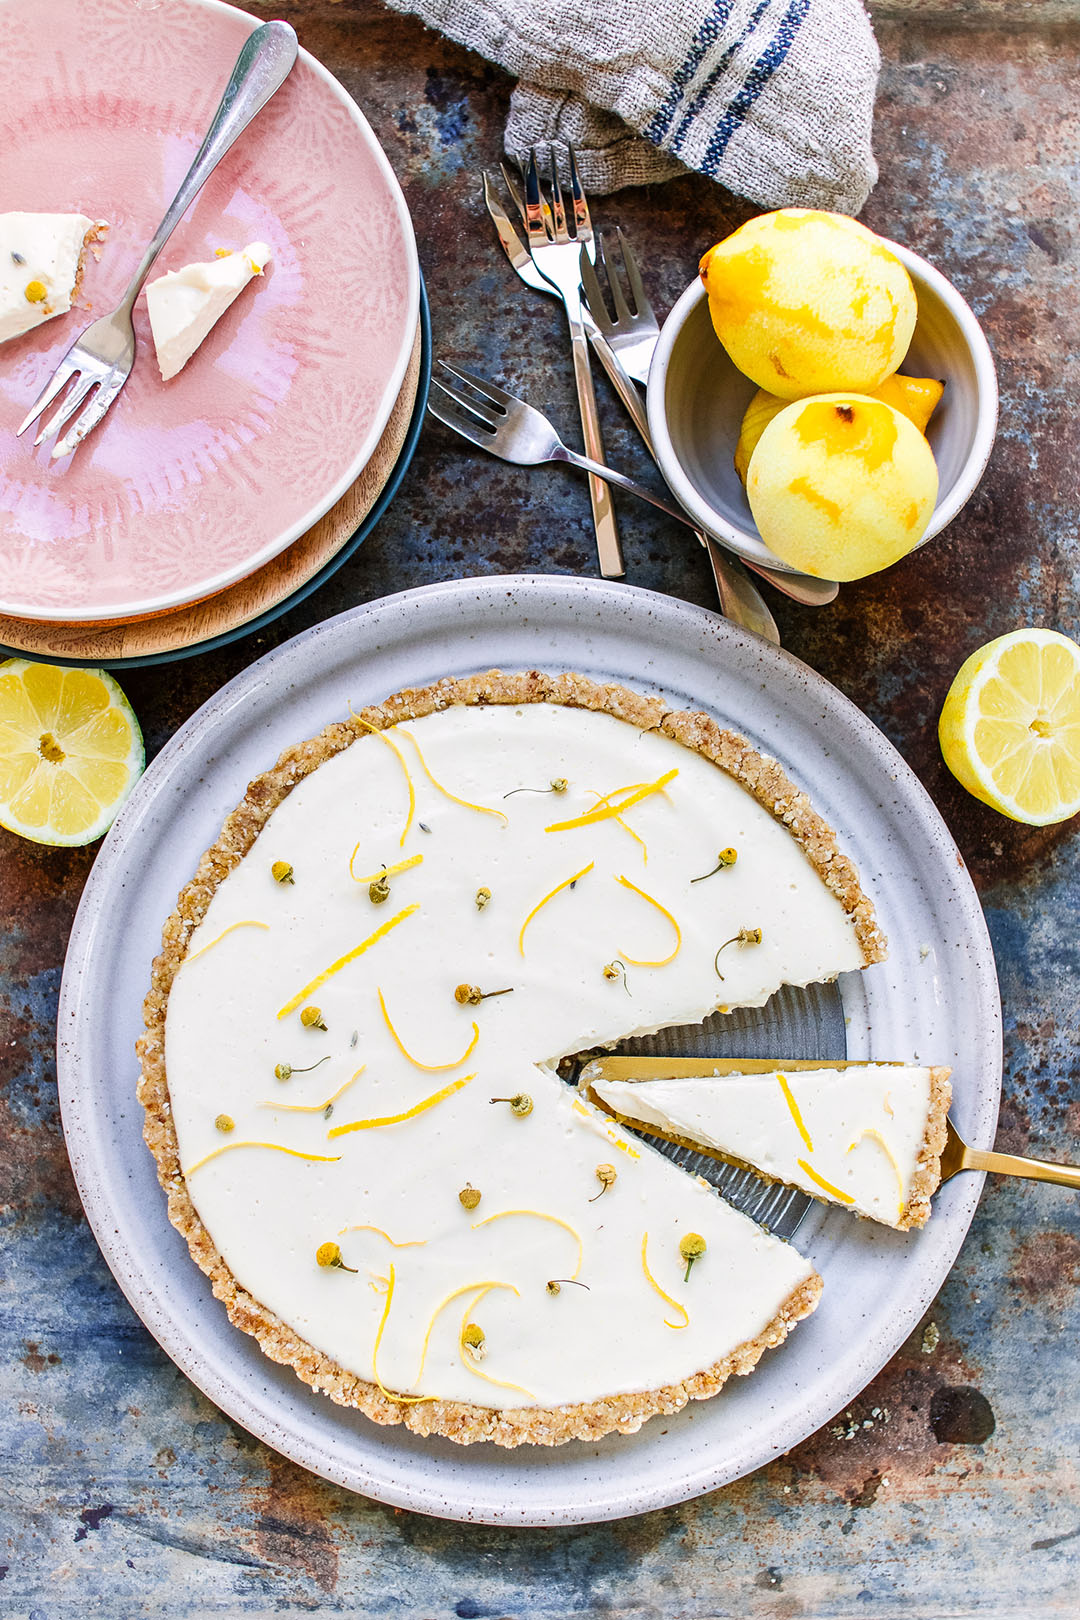 Lemon Tart with slice out.jpg